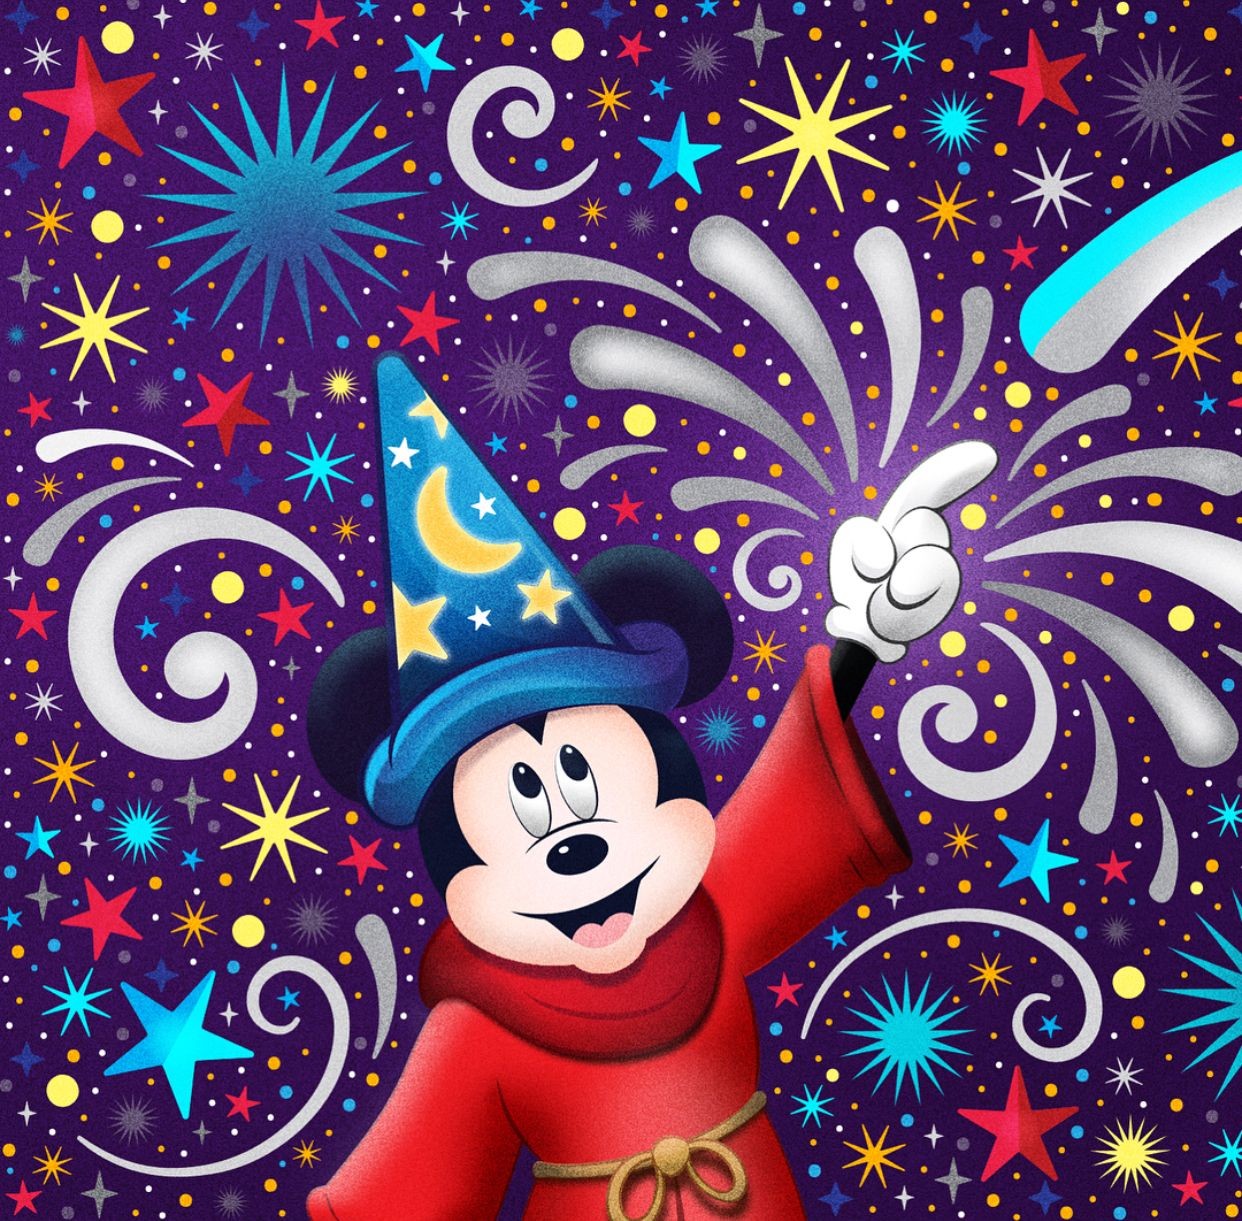 Sorcerer Mickey Jay Ratner Mickey Mouse Art Disney Posters Disney Parks Blog